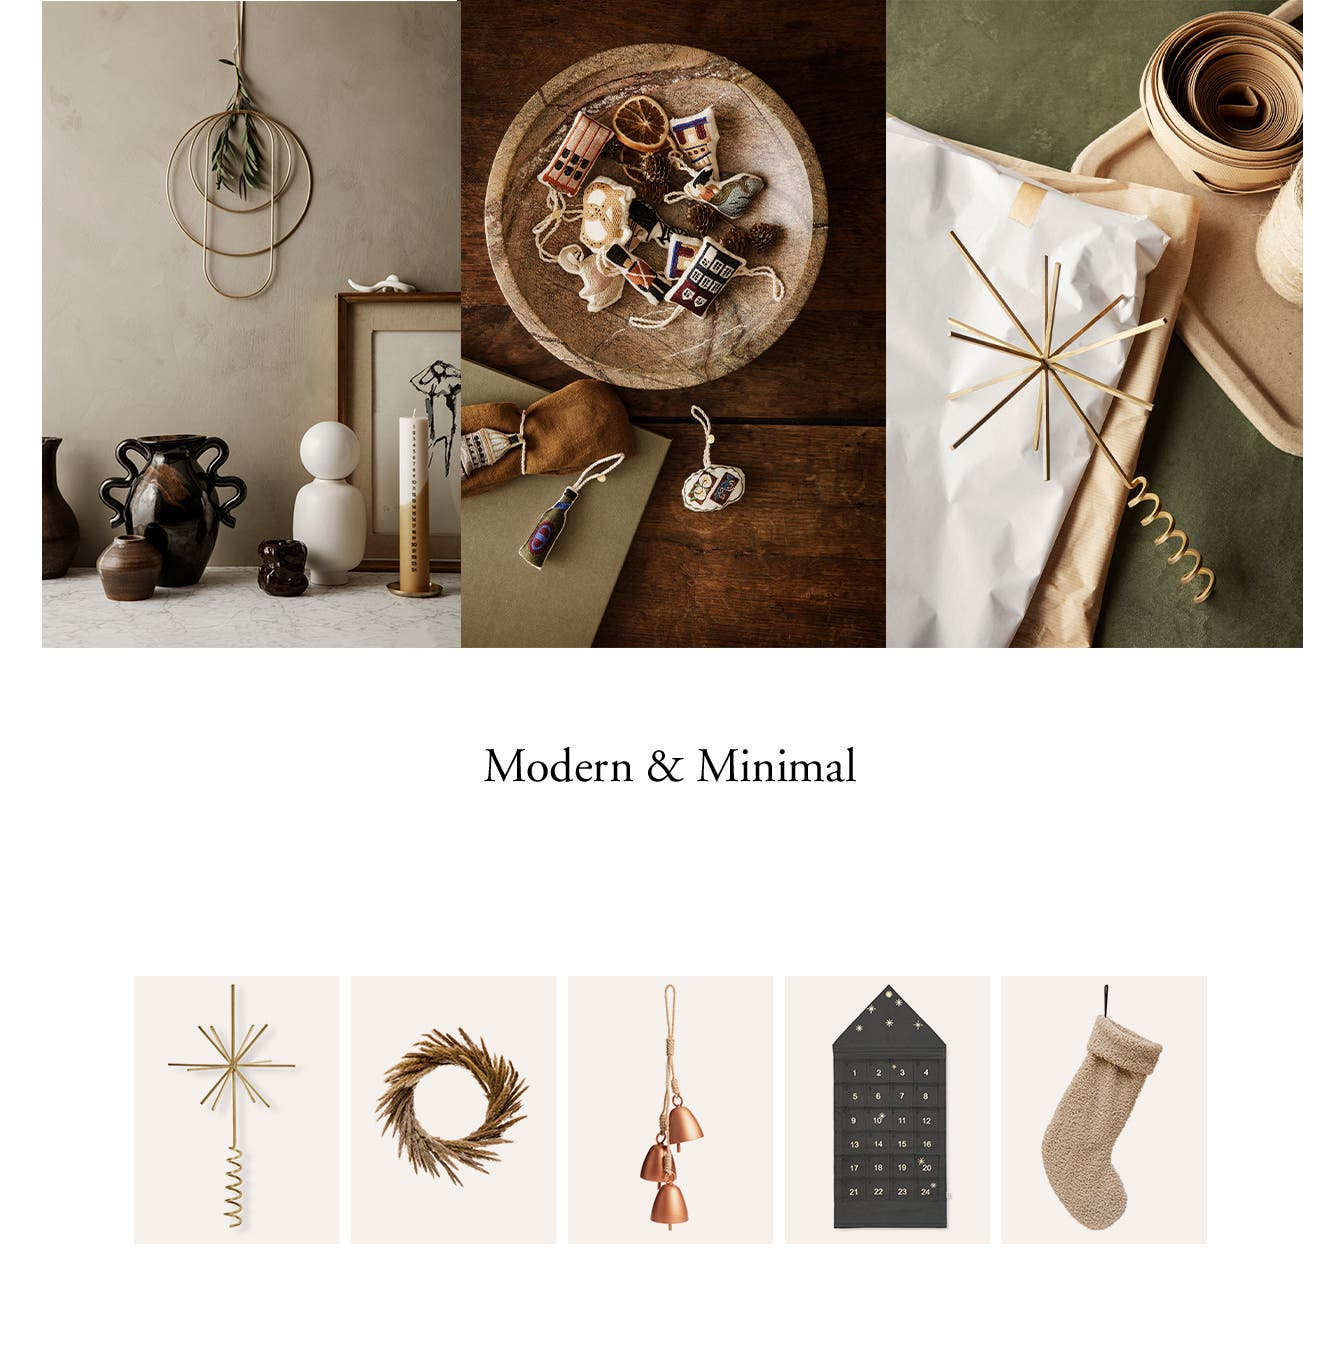 Neutral-toned holiday decorations and ornaments.